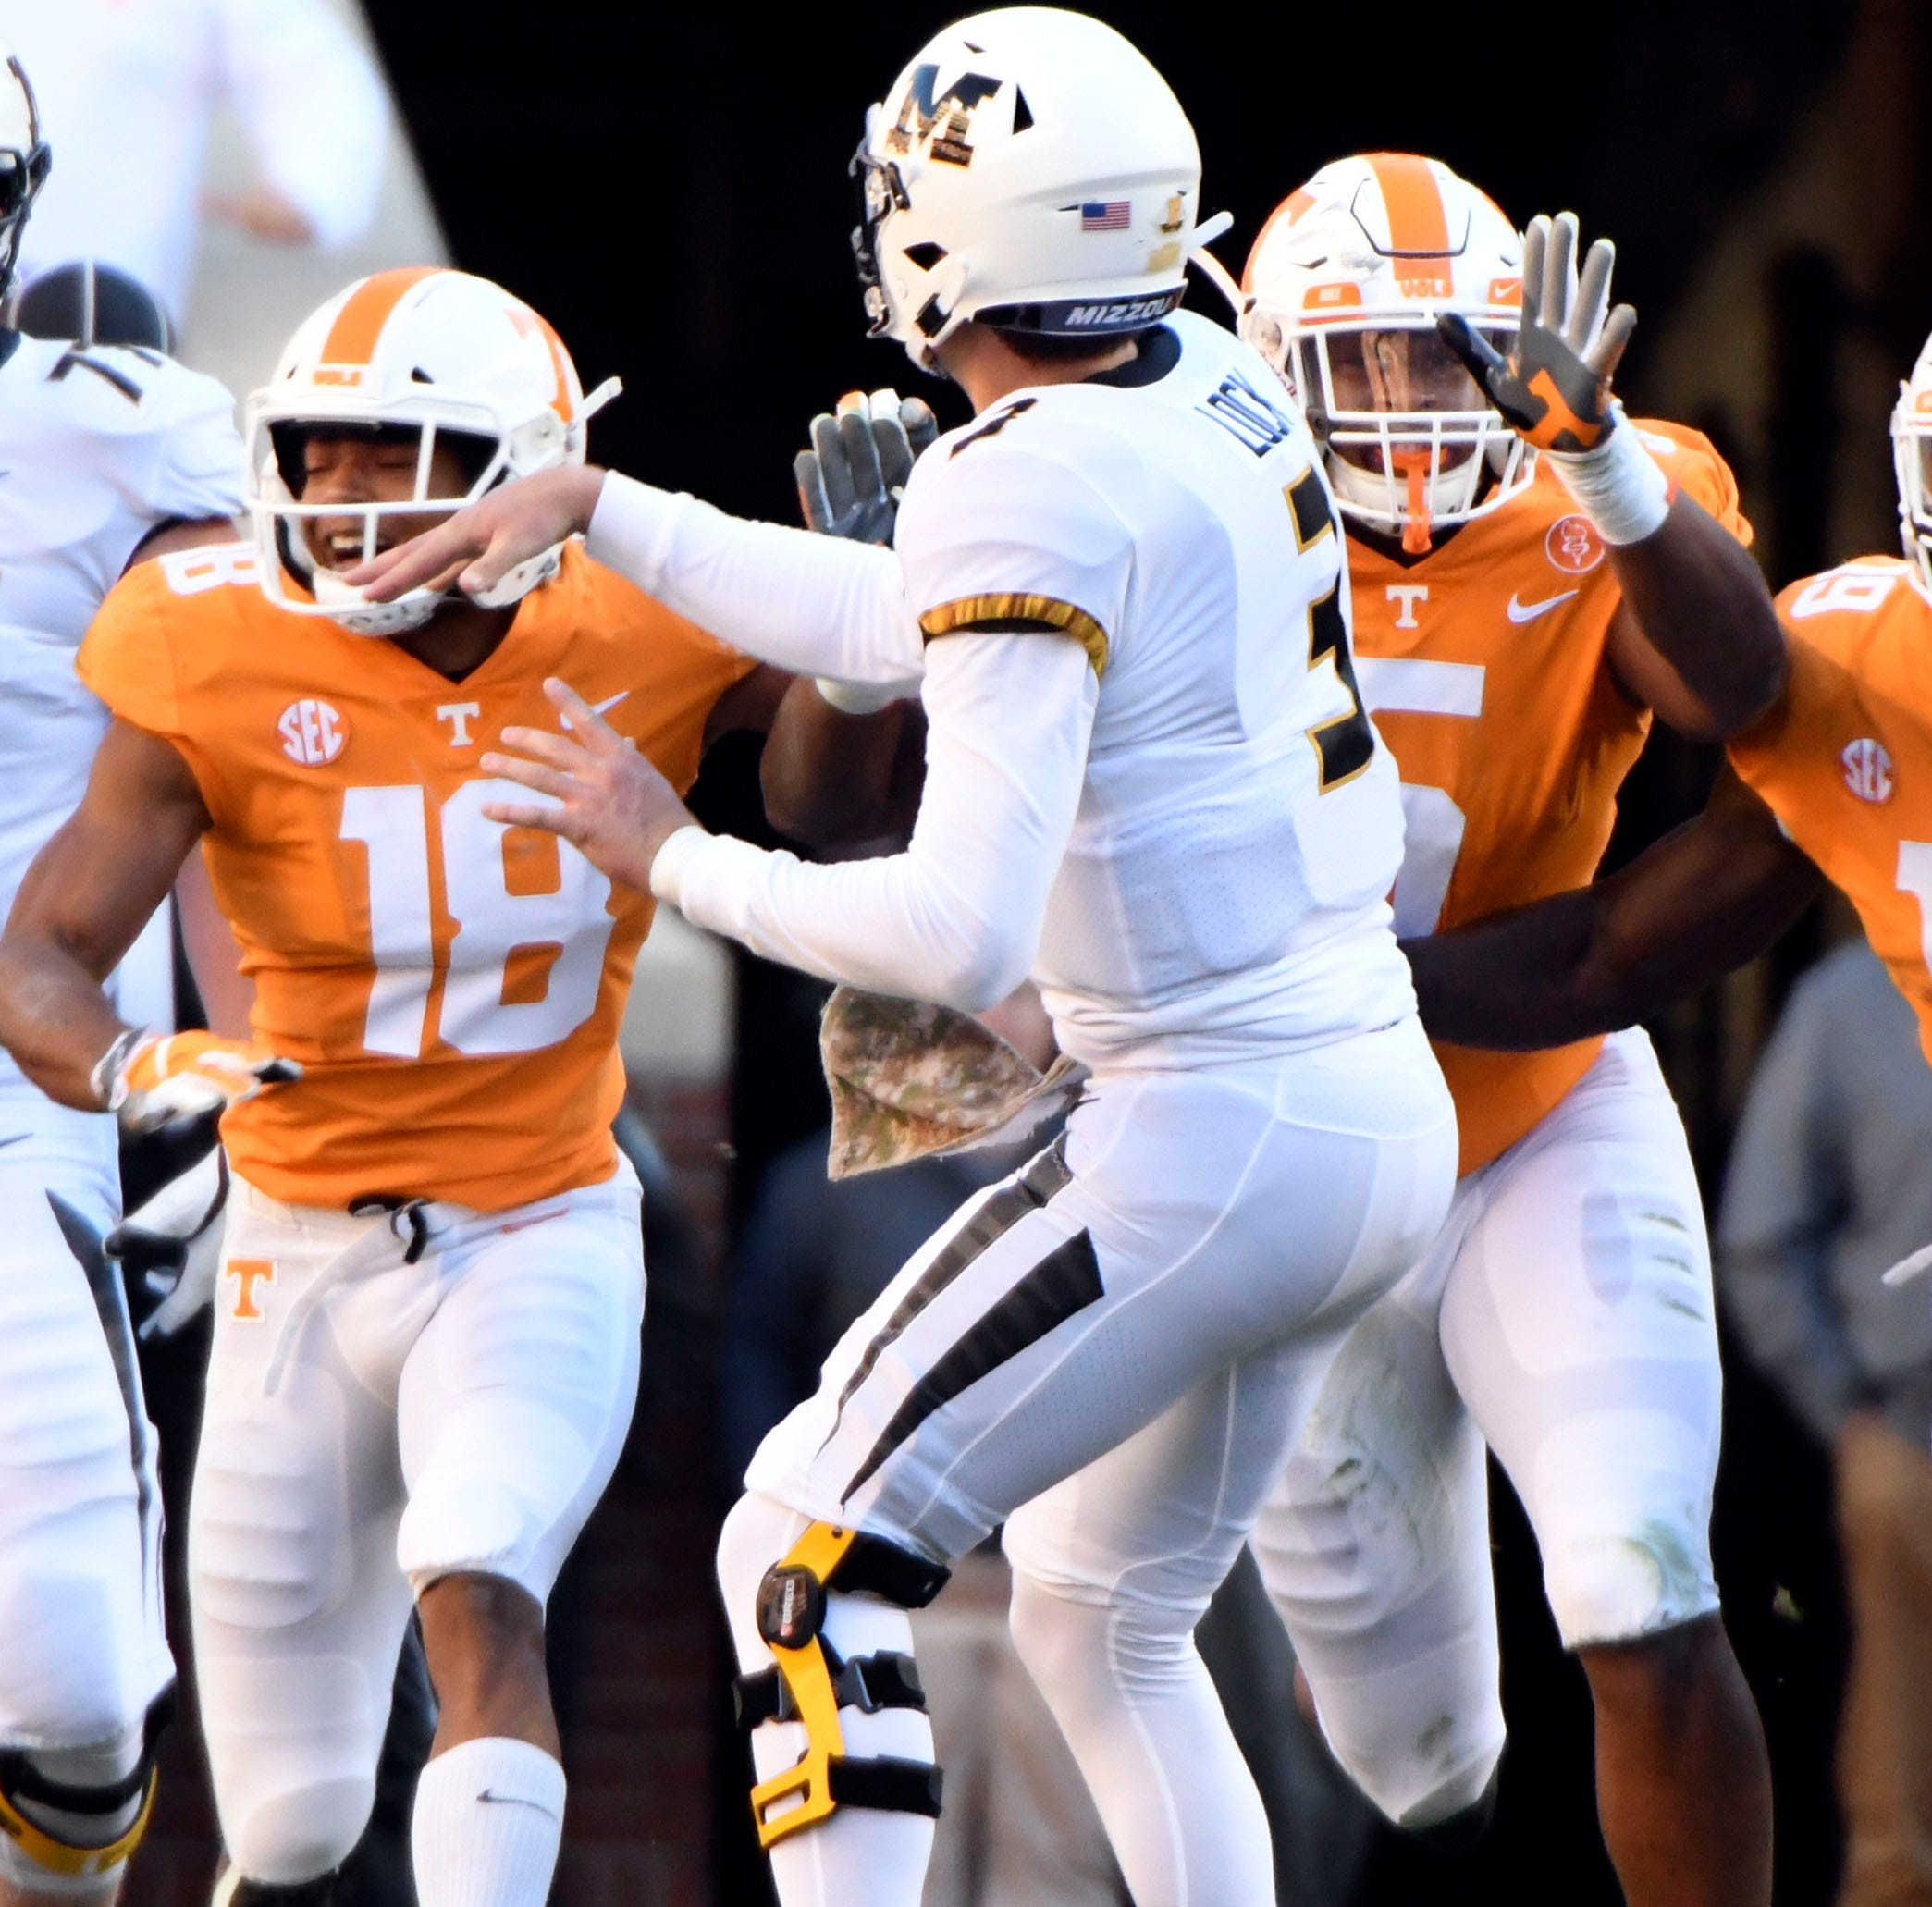 Missouri Tigers QB Drew Lock blasts Vol Twitter in support of Derek Dooley hire